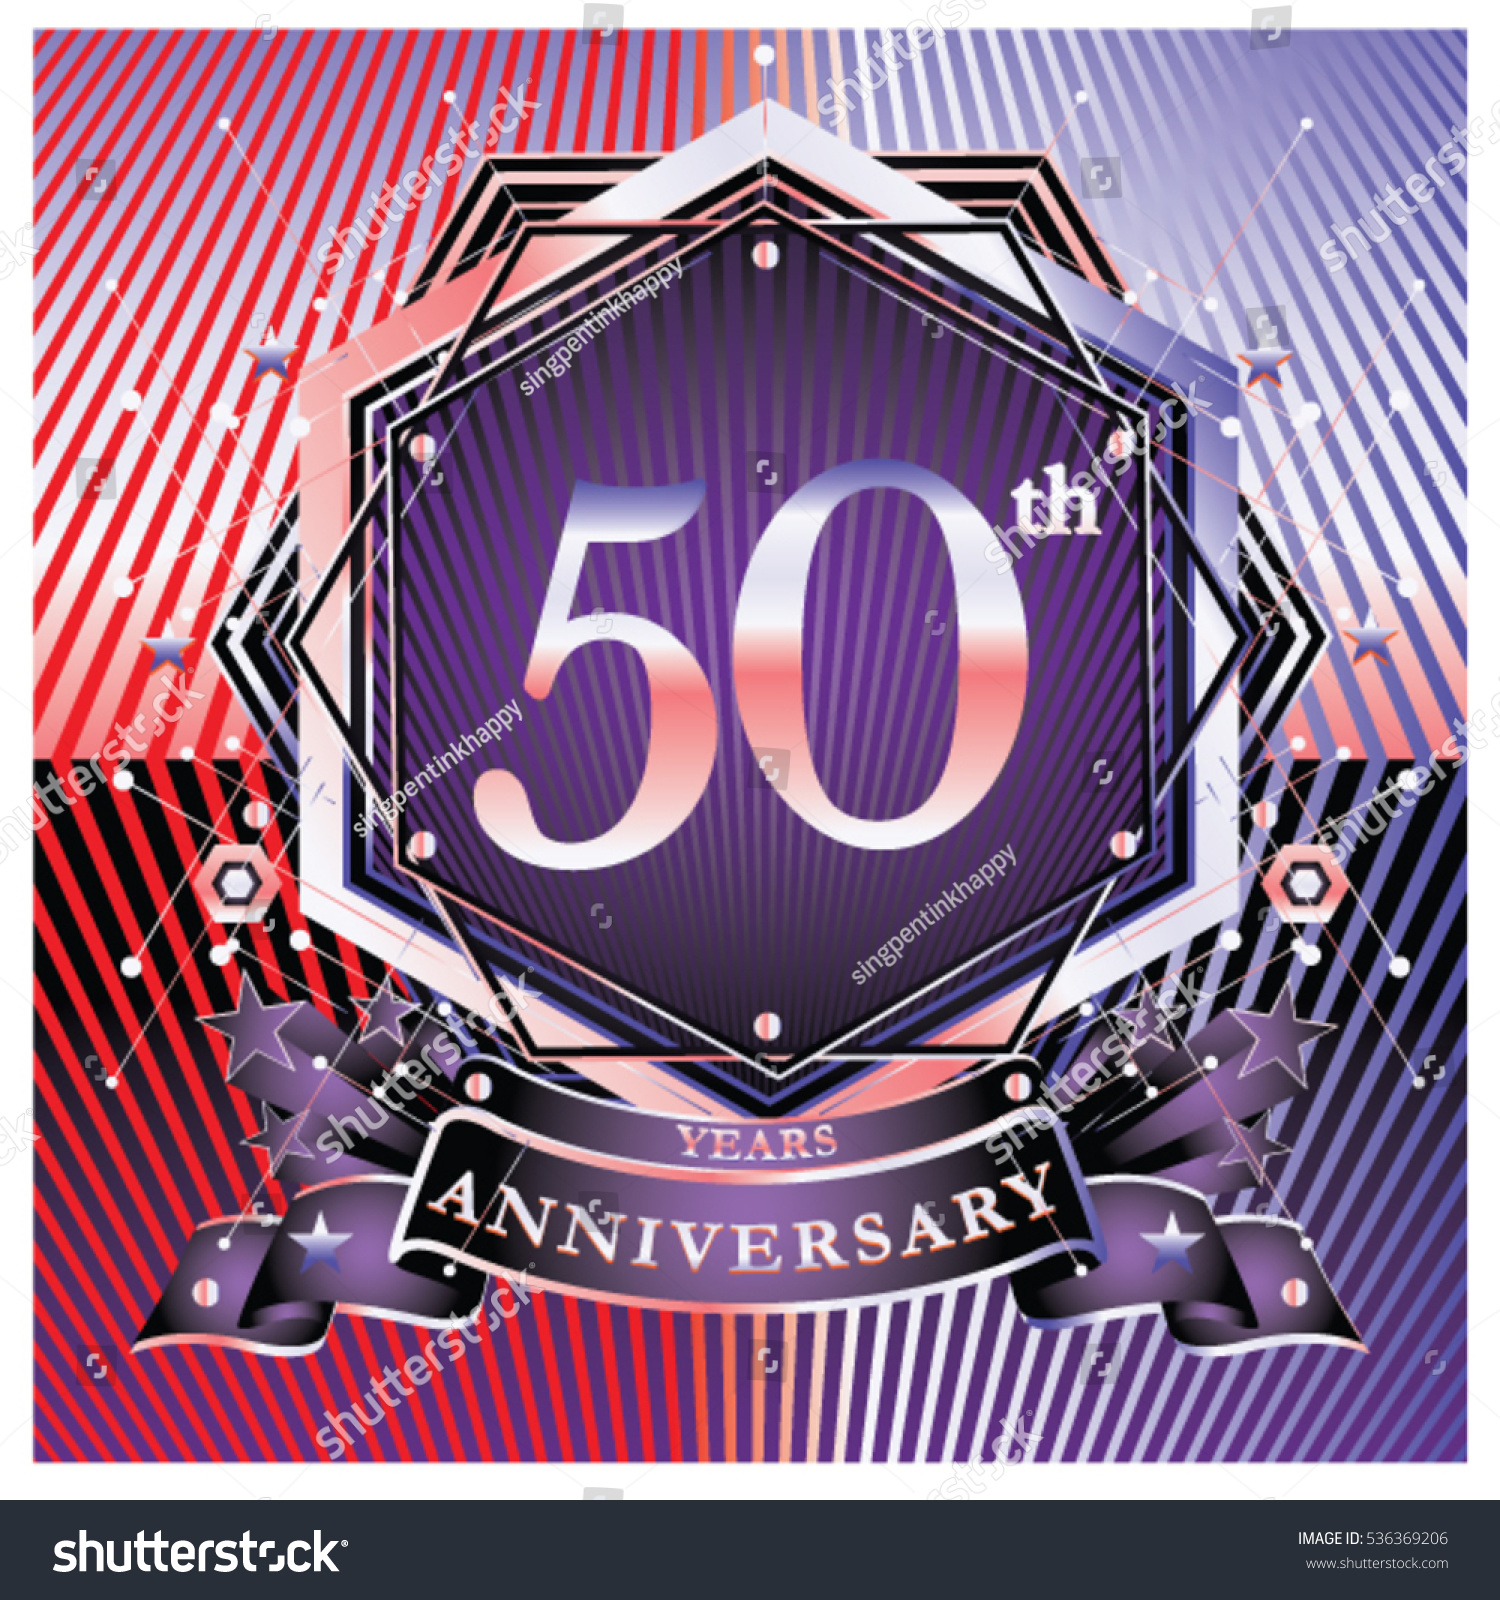 50 years golden anniversary logo celebration stock vector 50 years golden anniversary logo celebration with ring and ribbon symbol and template for greeting buycottarizona Choice Image